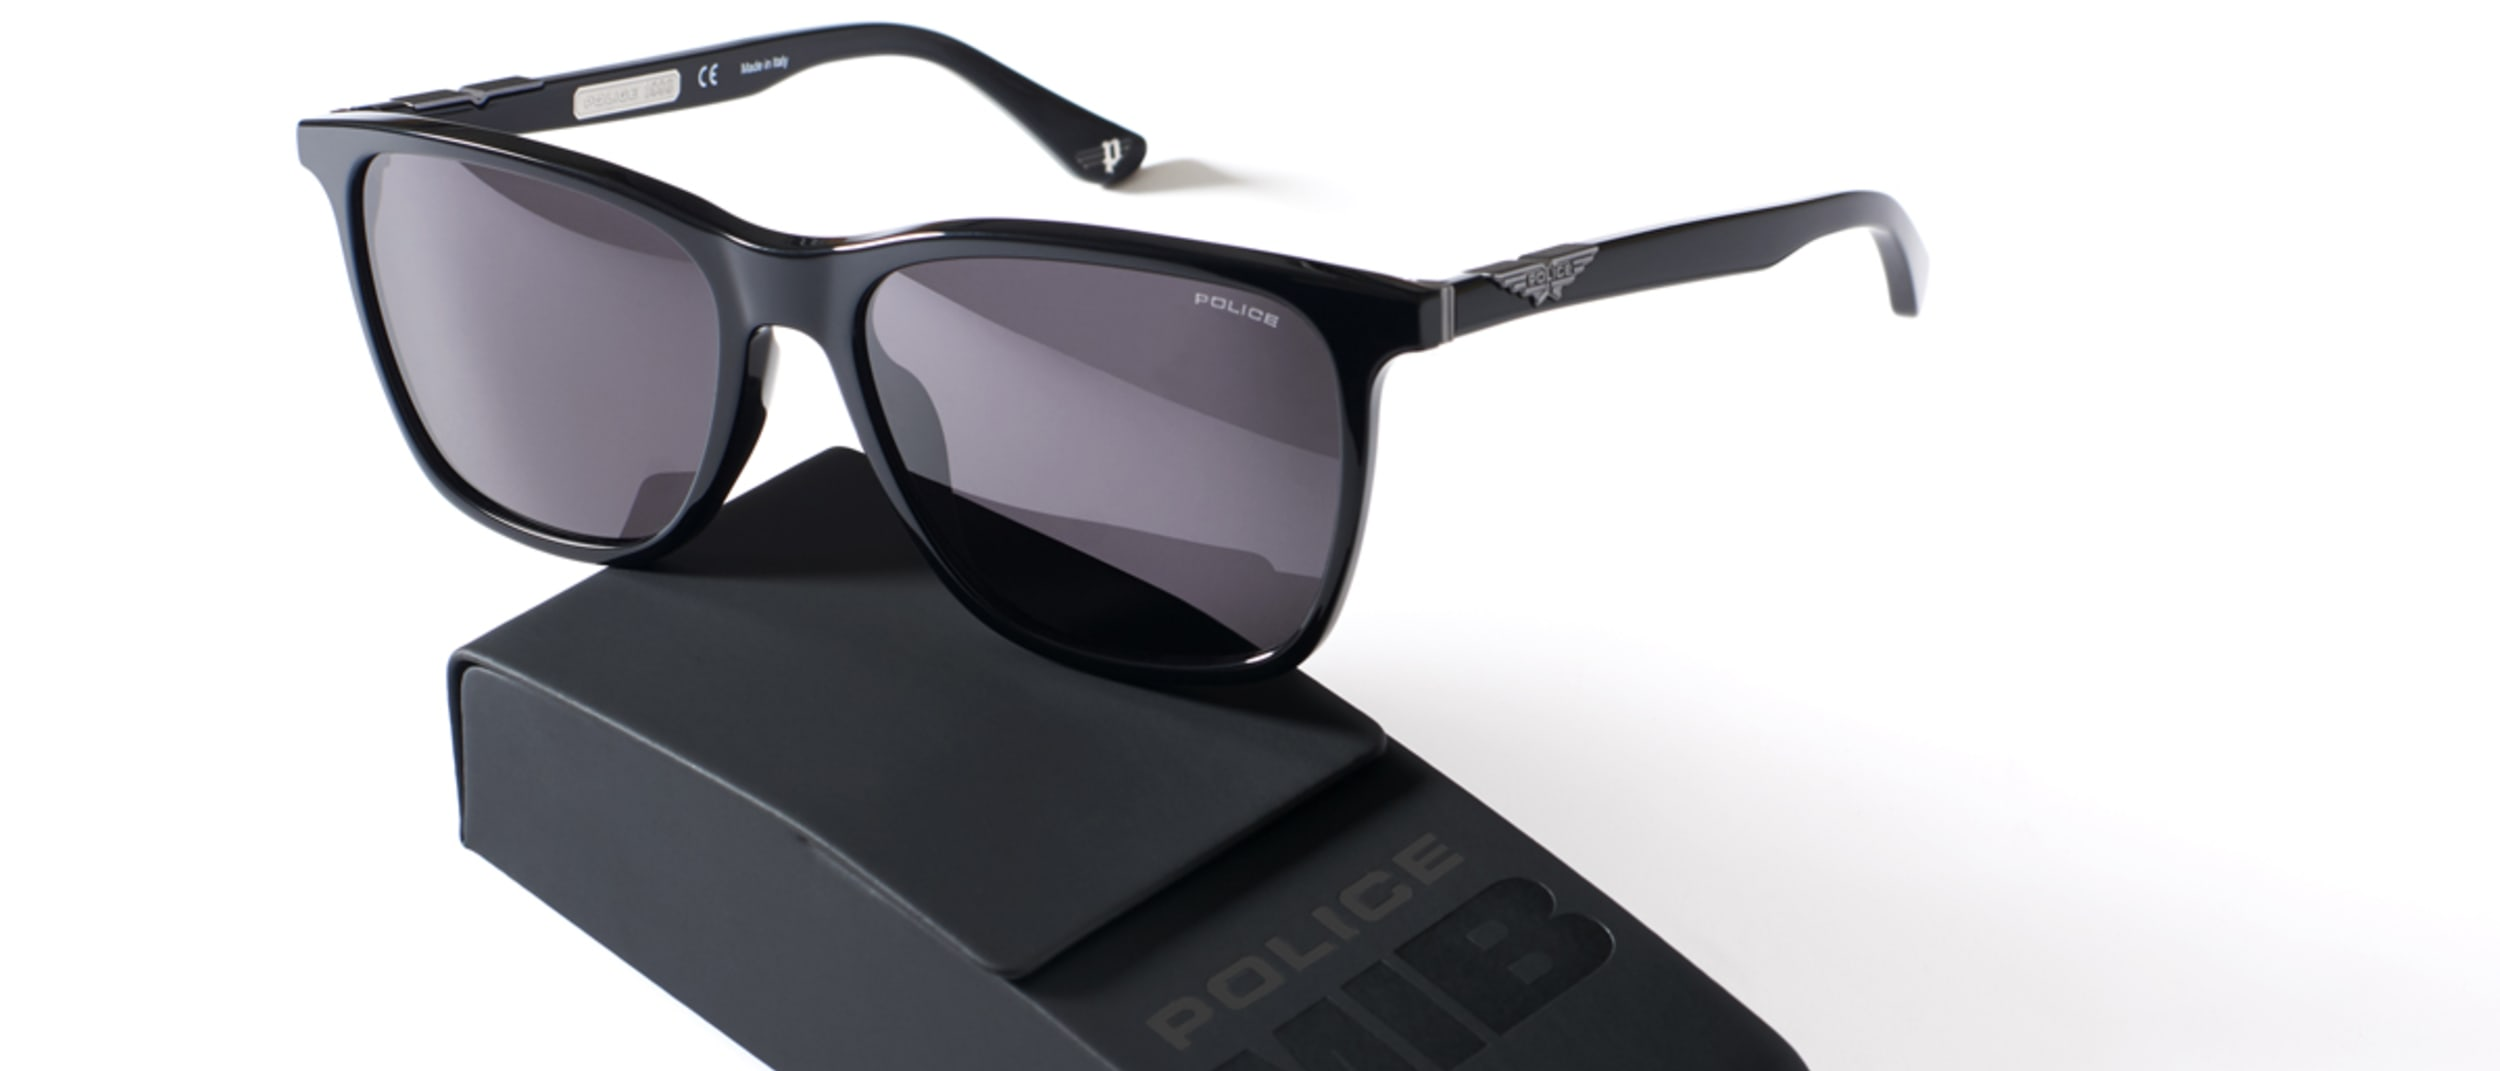 Sunglass Culture: Exclusive Men in Black Sunglasses in store now